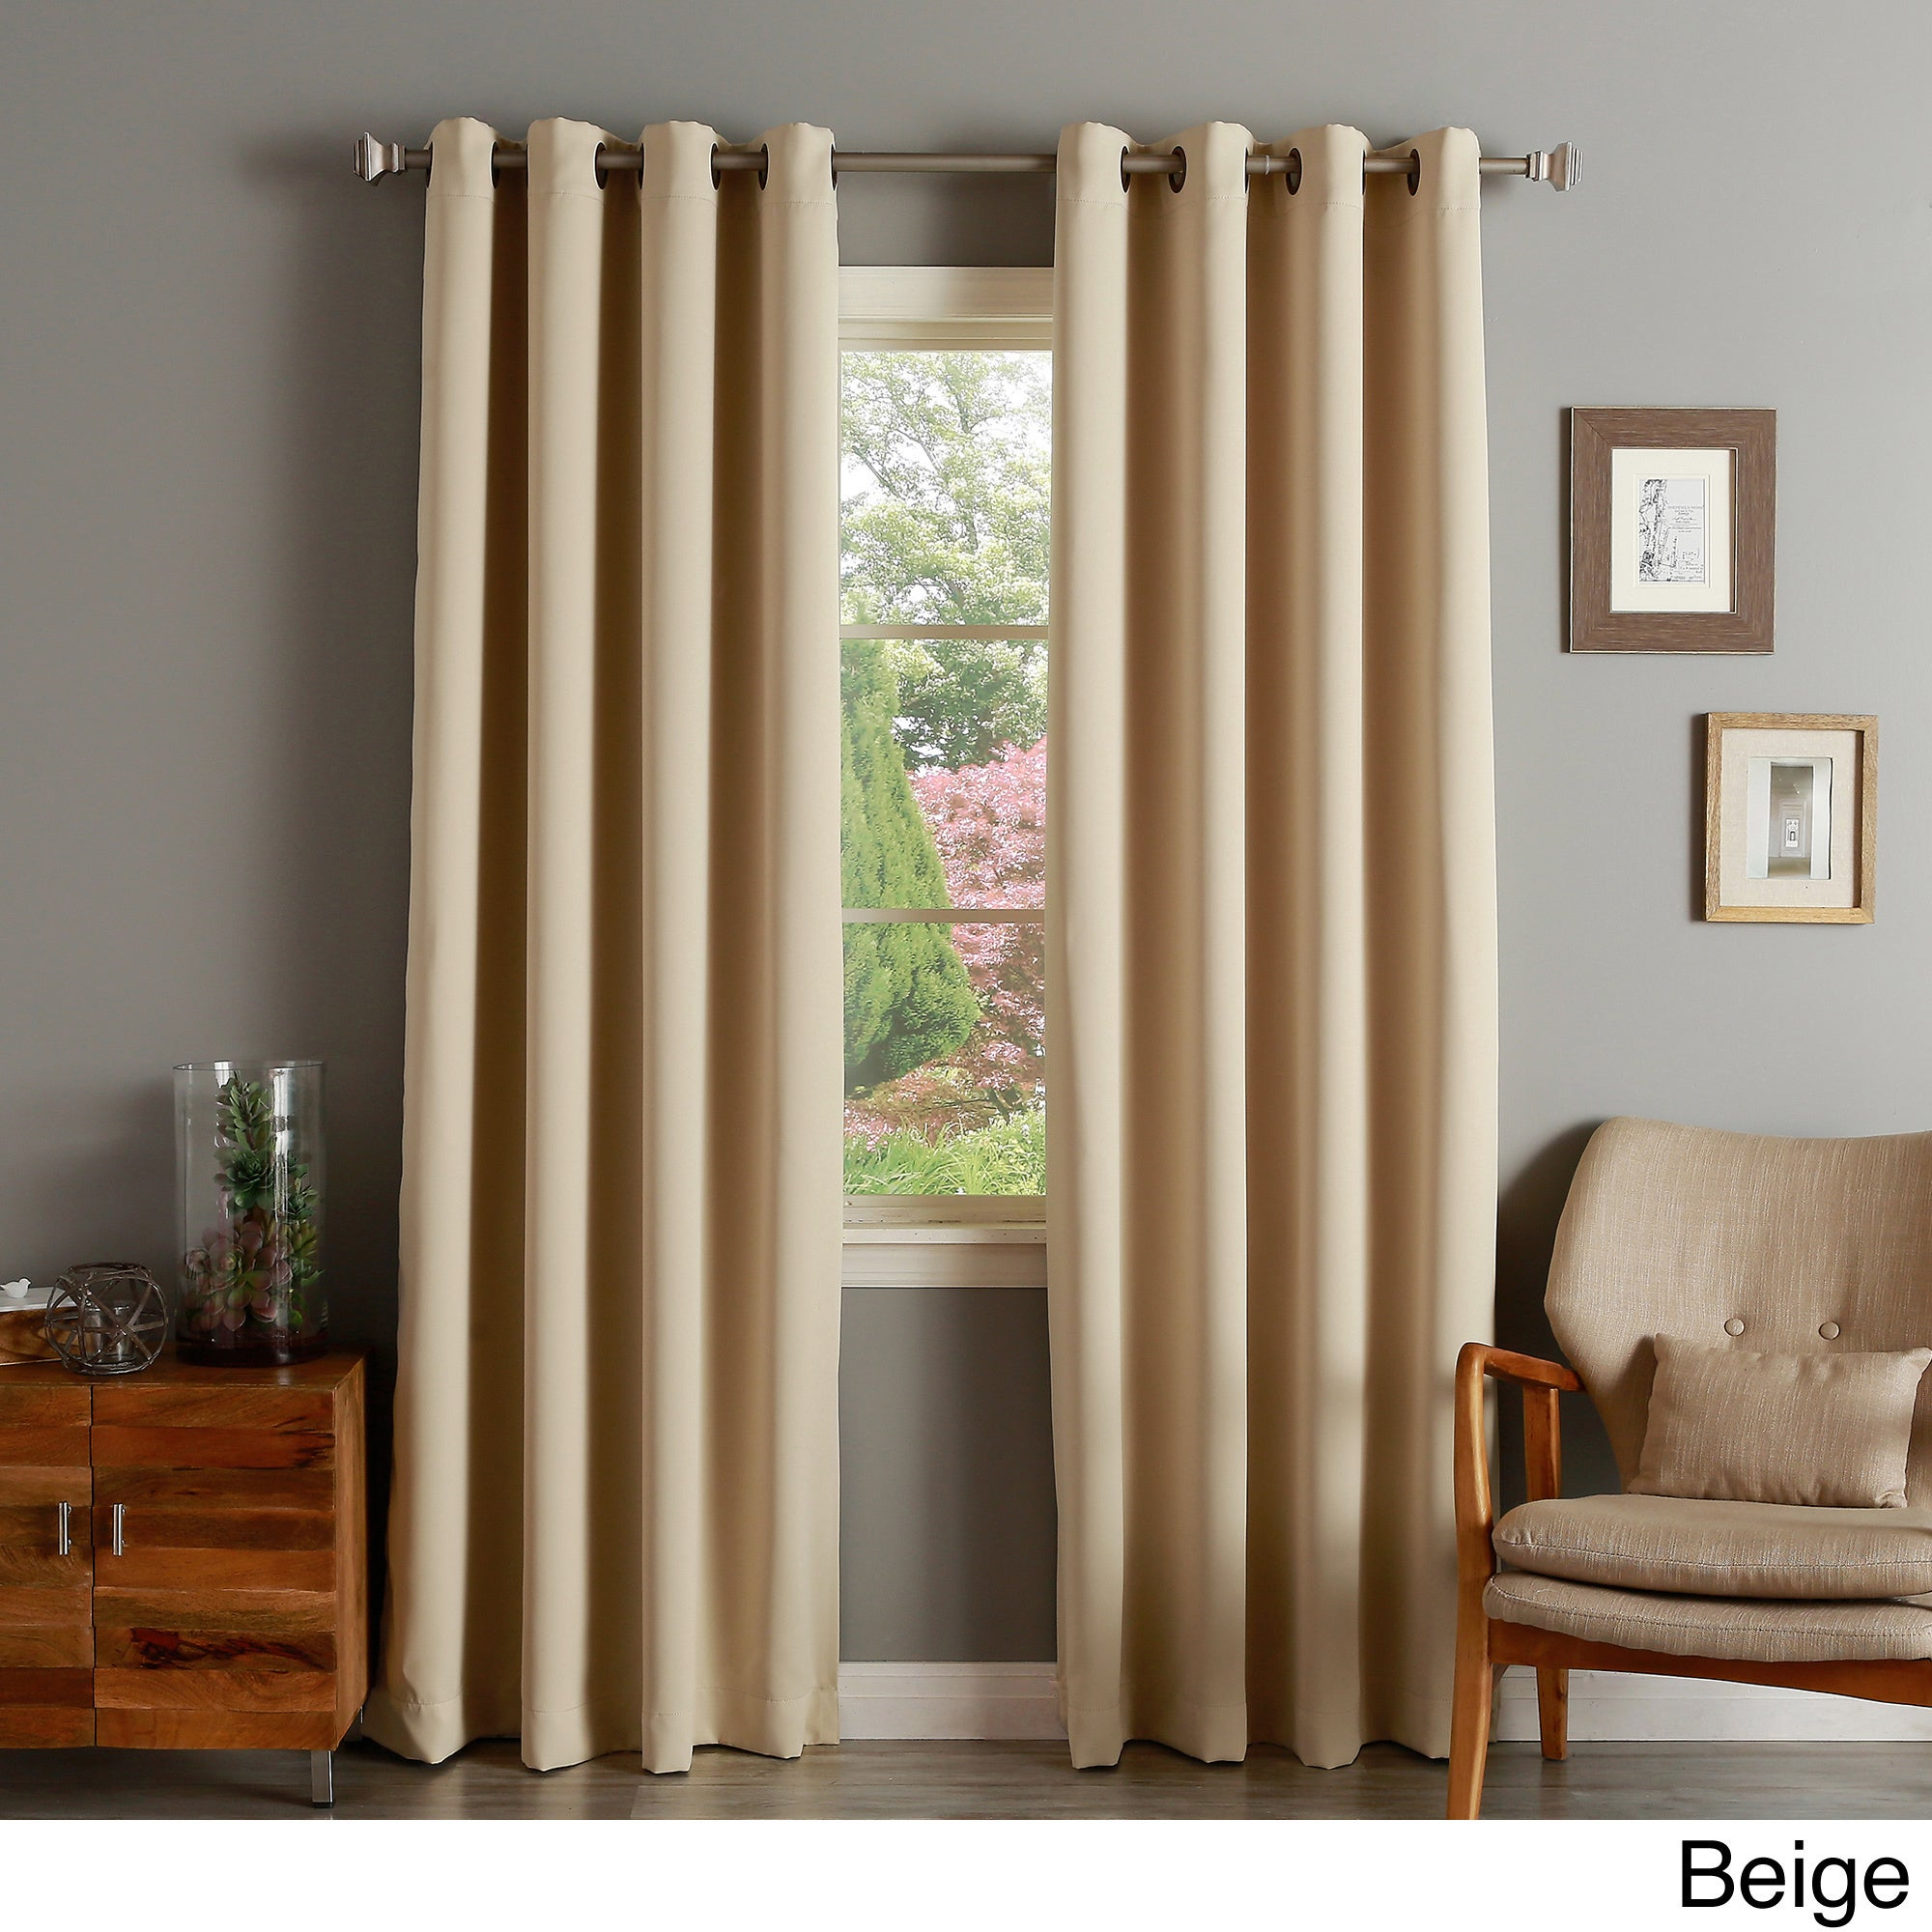 Aurora Home Thermal Insulated Blackout 90 Inch Grommet Top Curtain Panel  Pair   52 X